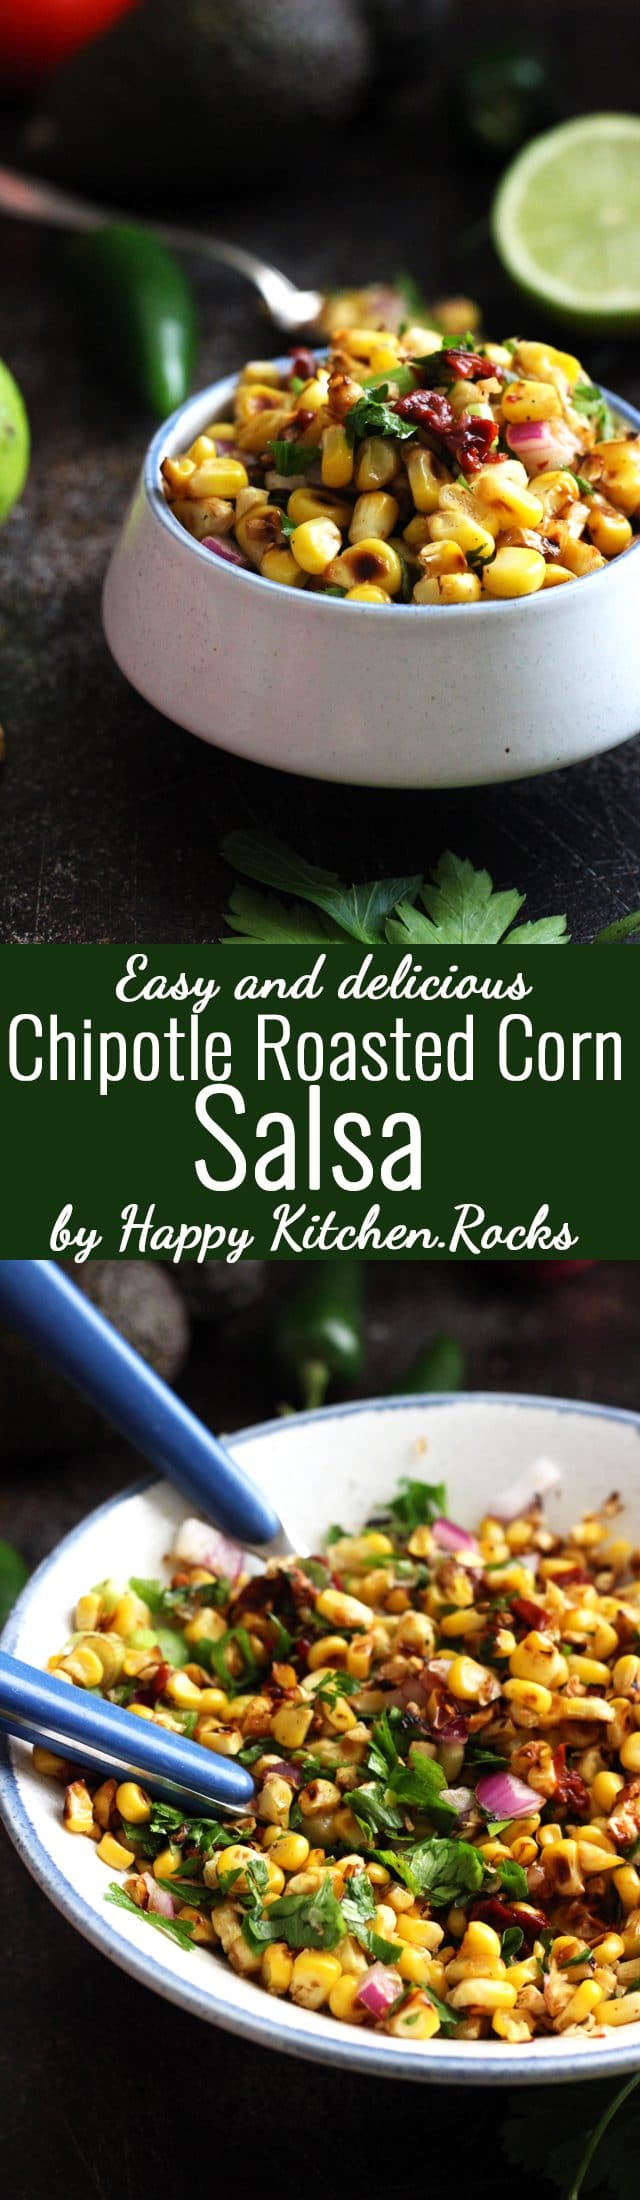 Chipotle Corn Salsa Pinterest Collage Long Pin